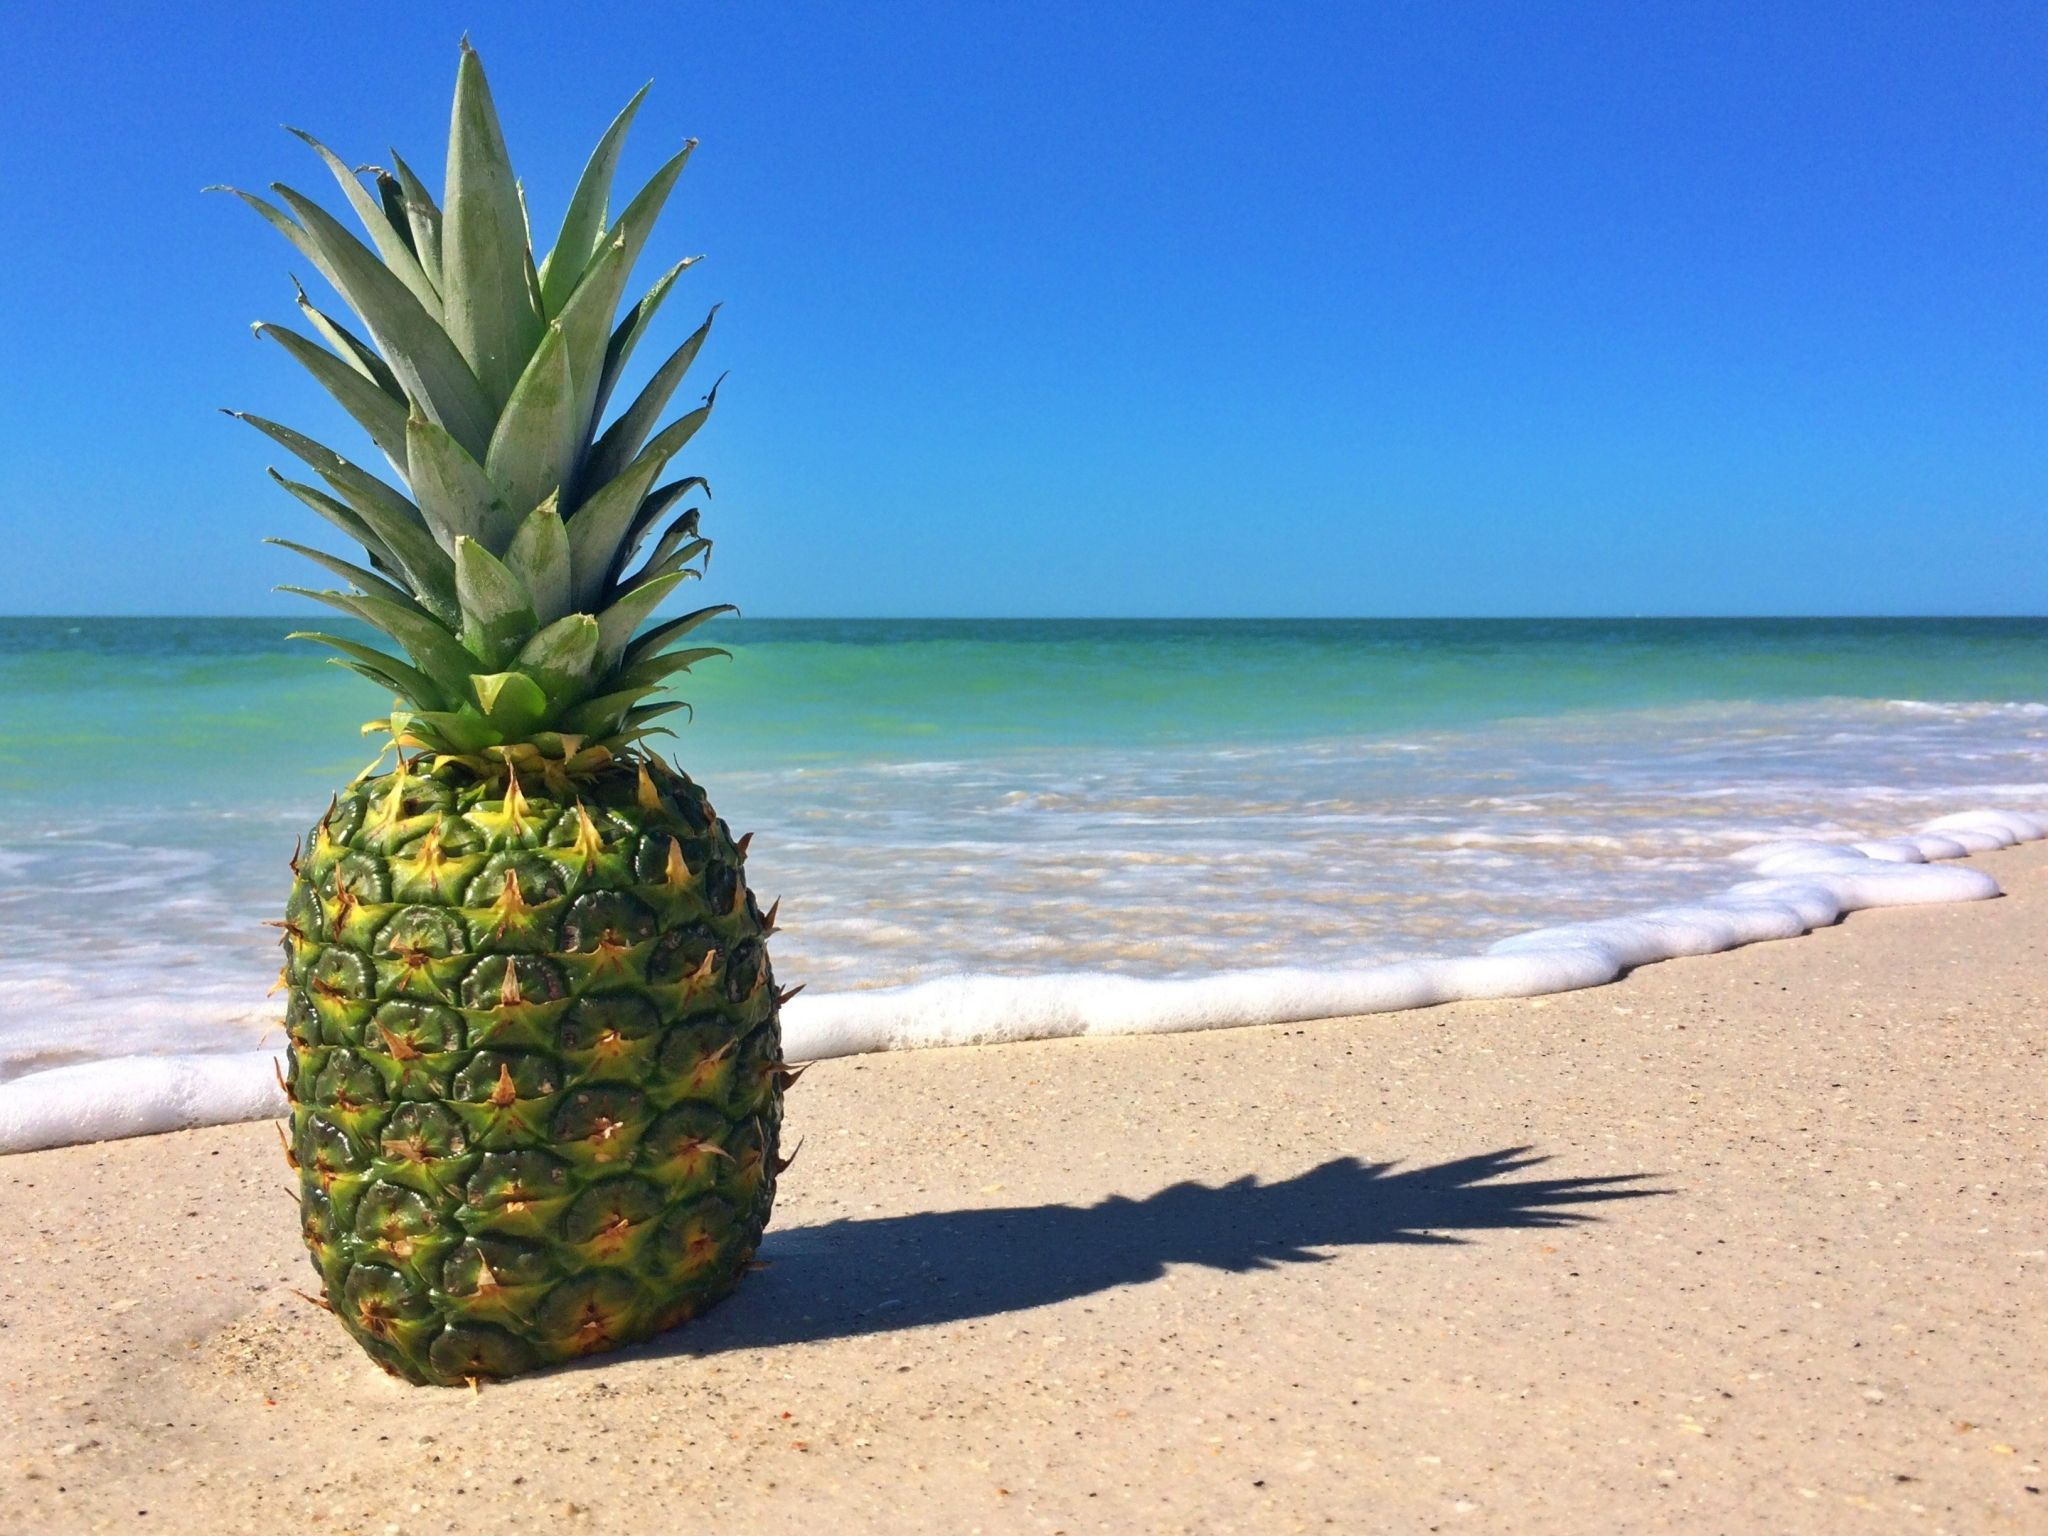 Pineapple At The Beach: Pineapple Computer Wallpaper Backgrounds